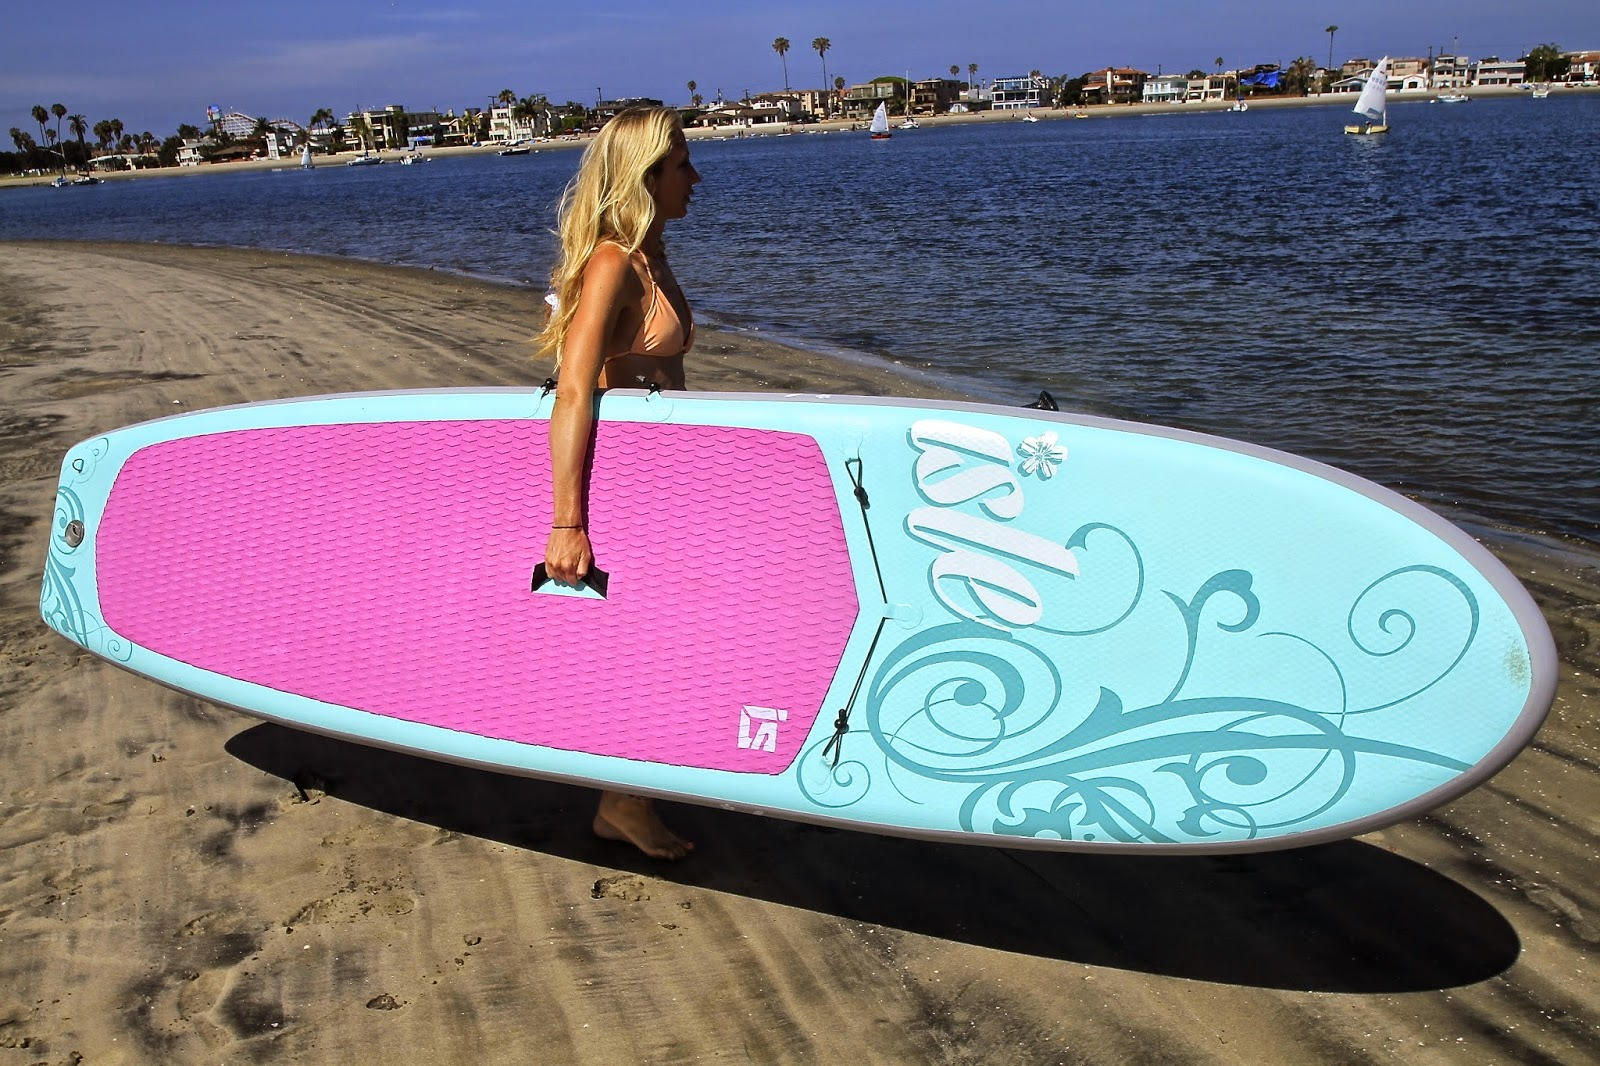 My absolute favorite feature of the new Women s Inflatable SUP is the side  sling for your paddle so it s completely out of the way when you re trying  to ... eccae49de3